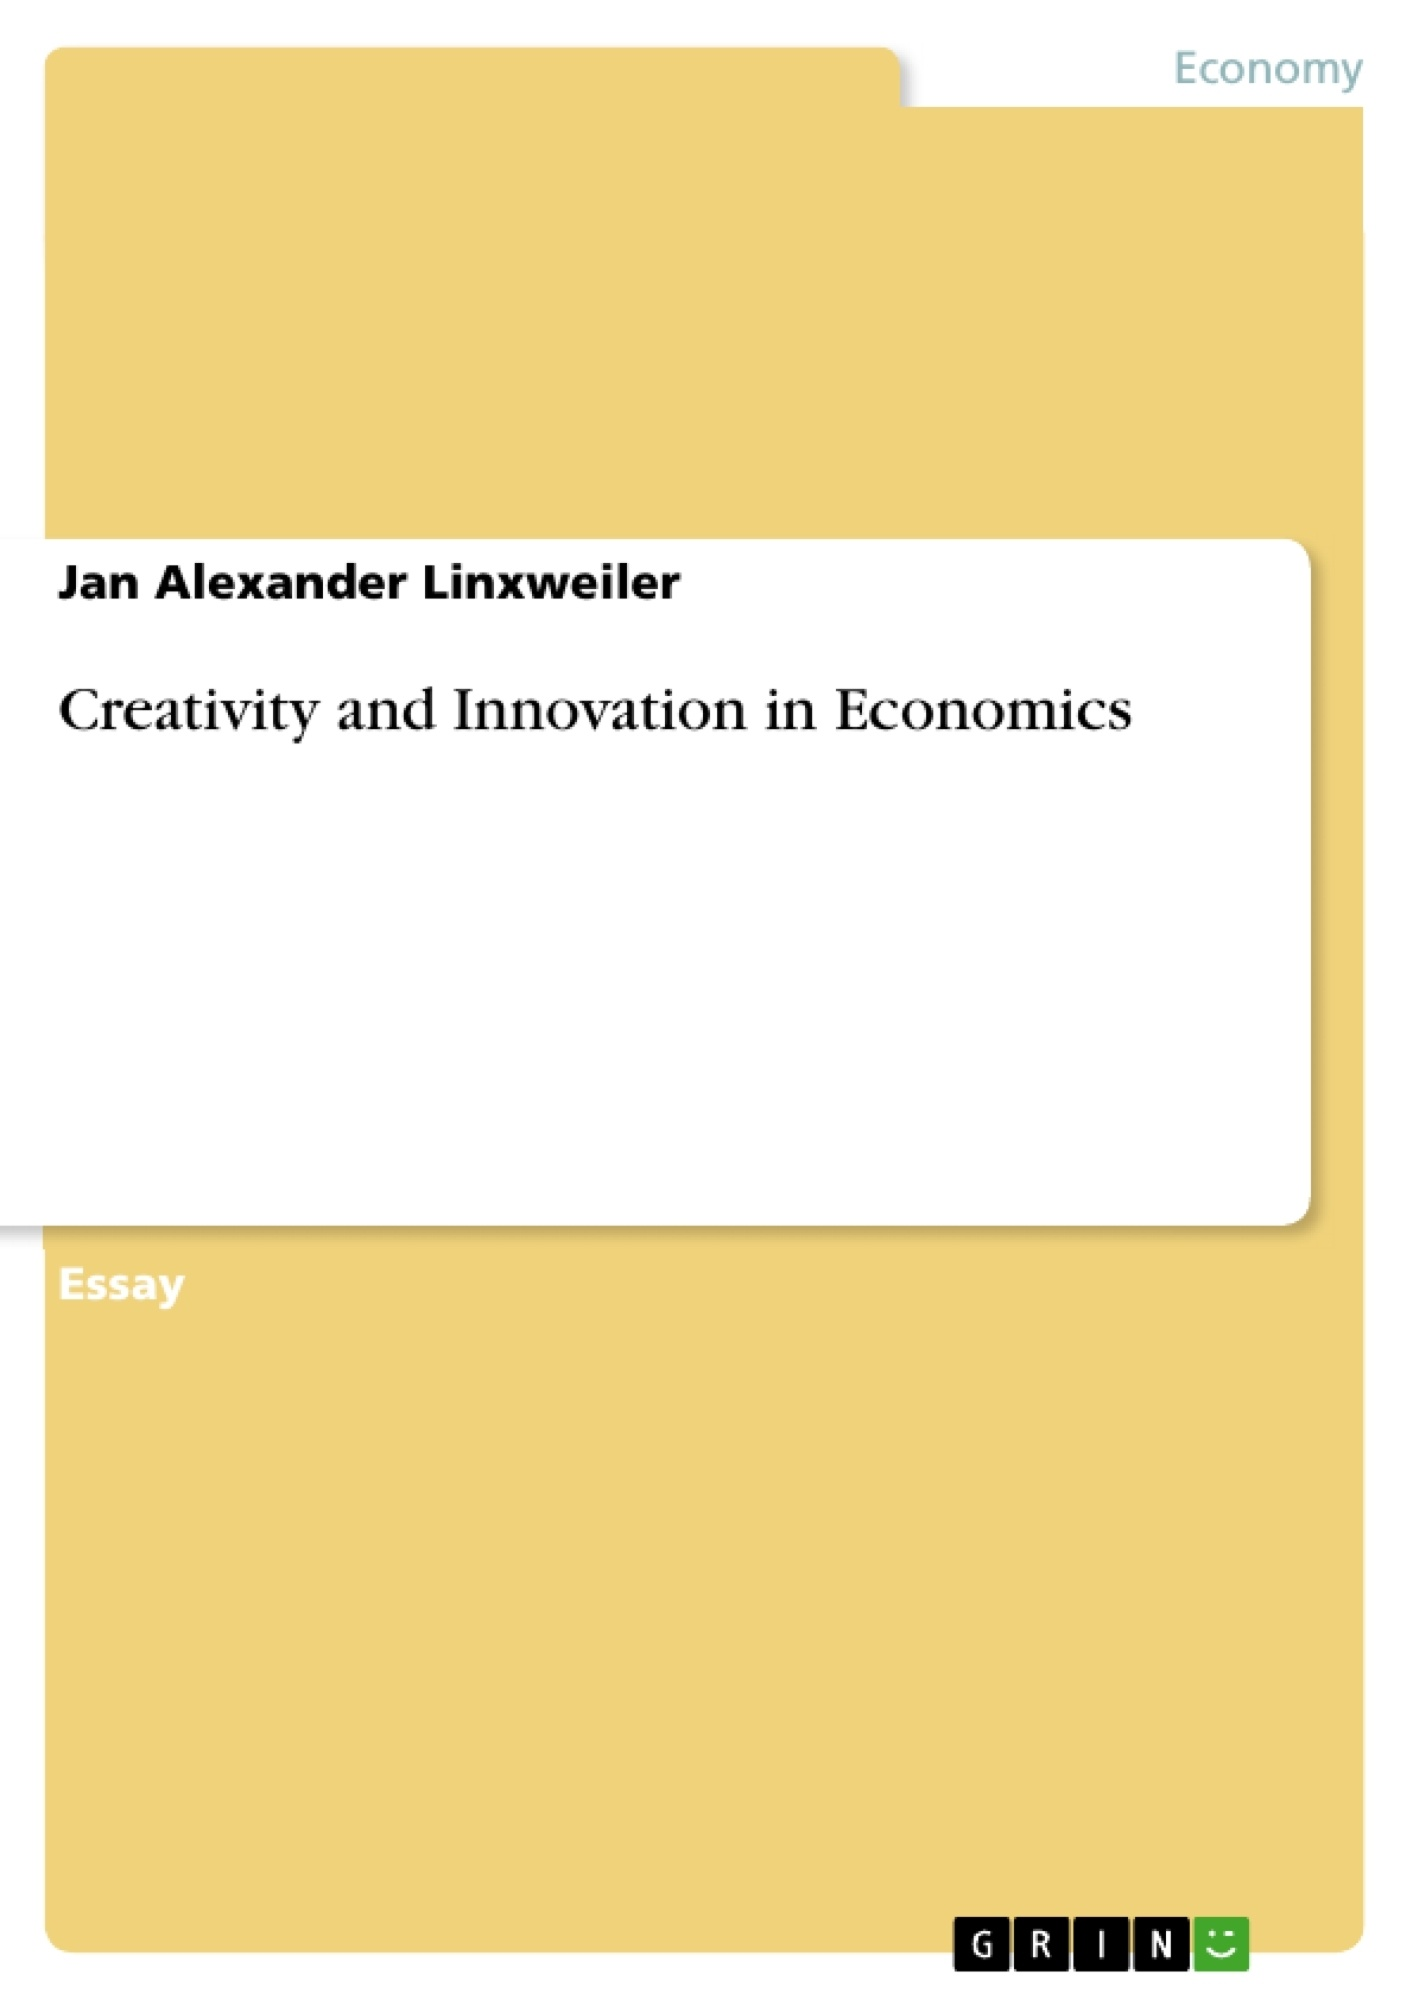 thesis on creativity and innovation